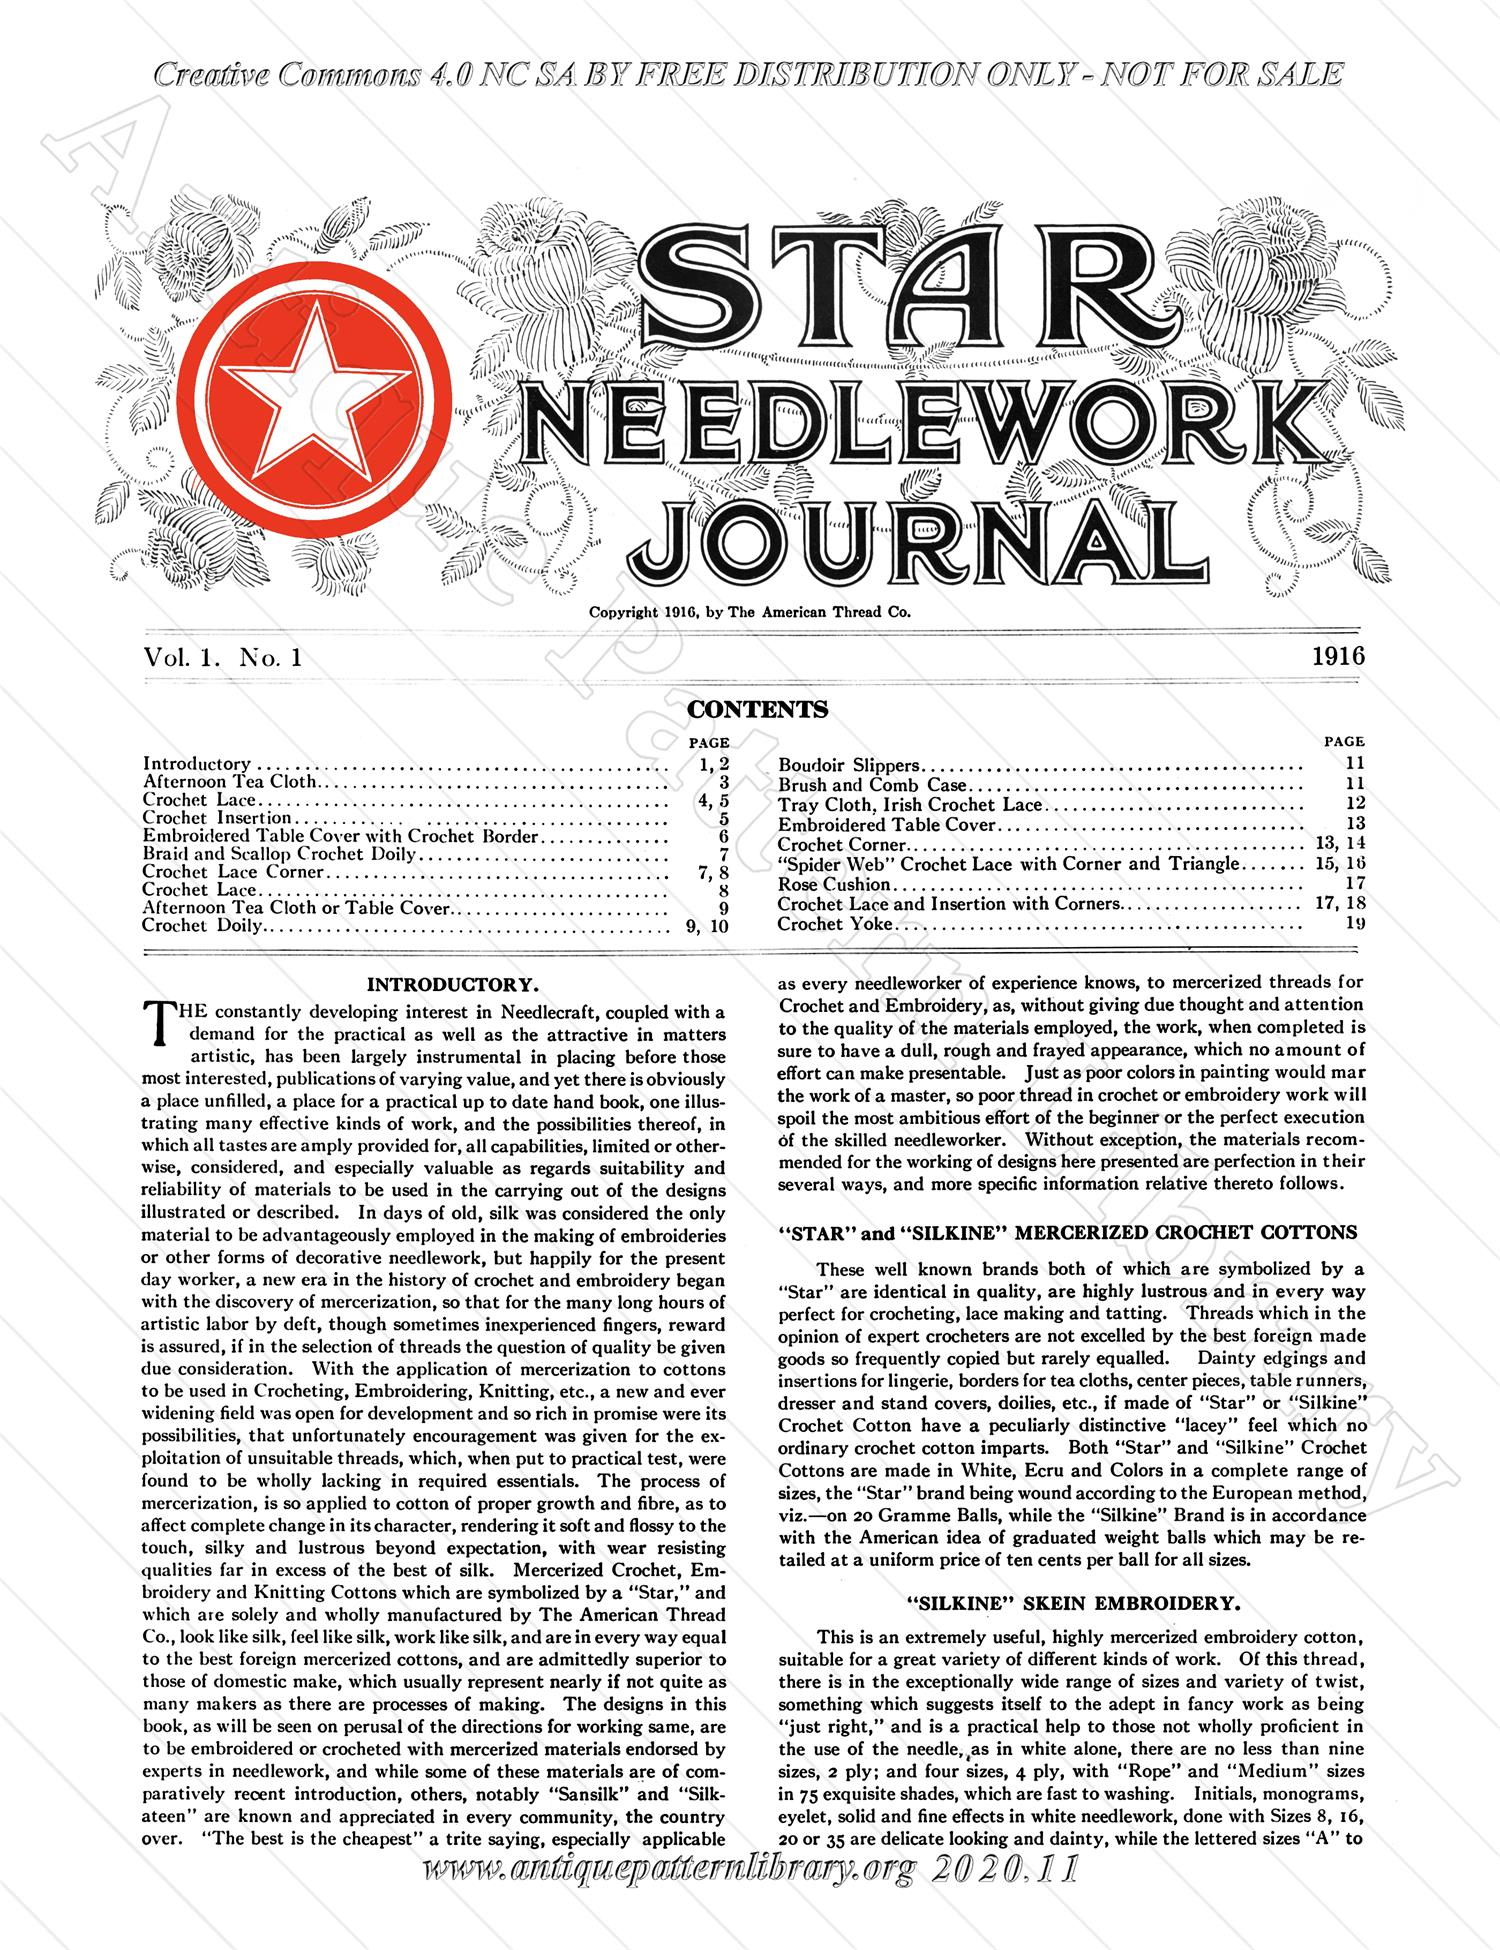 F-WM135 Star Needlework Journal